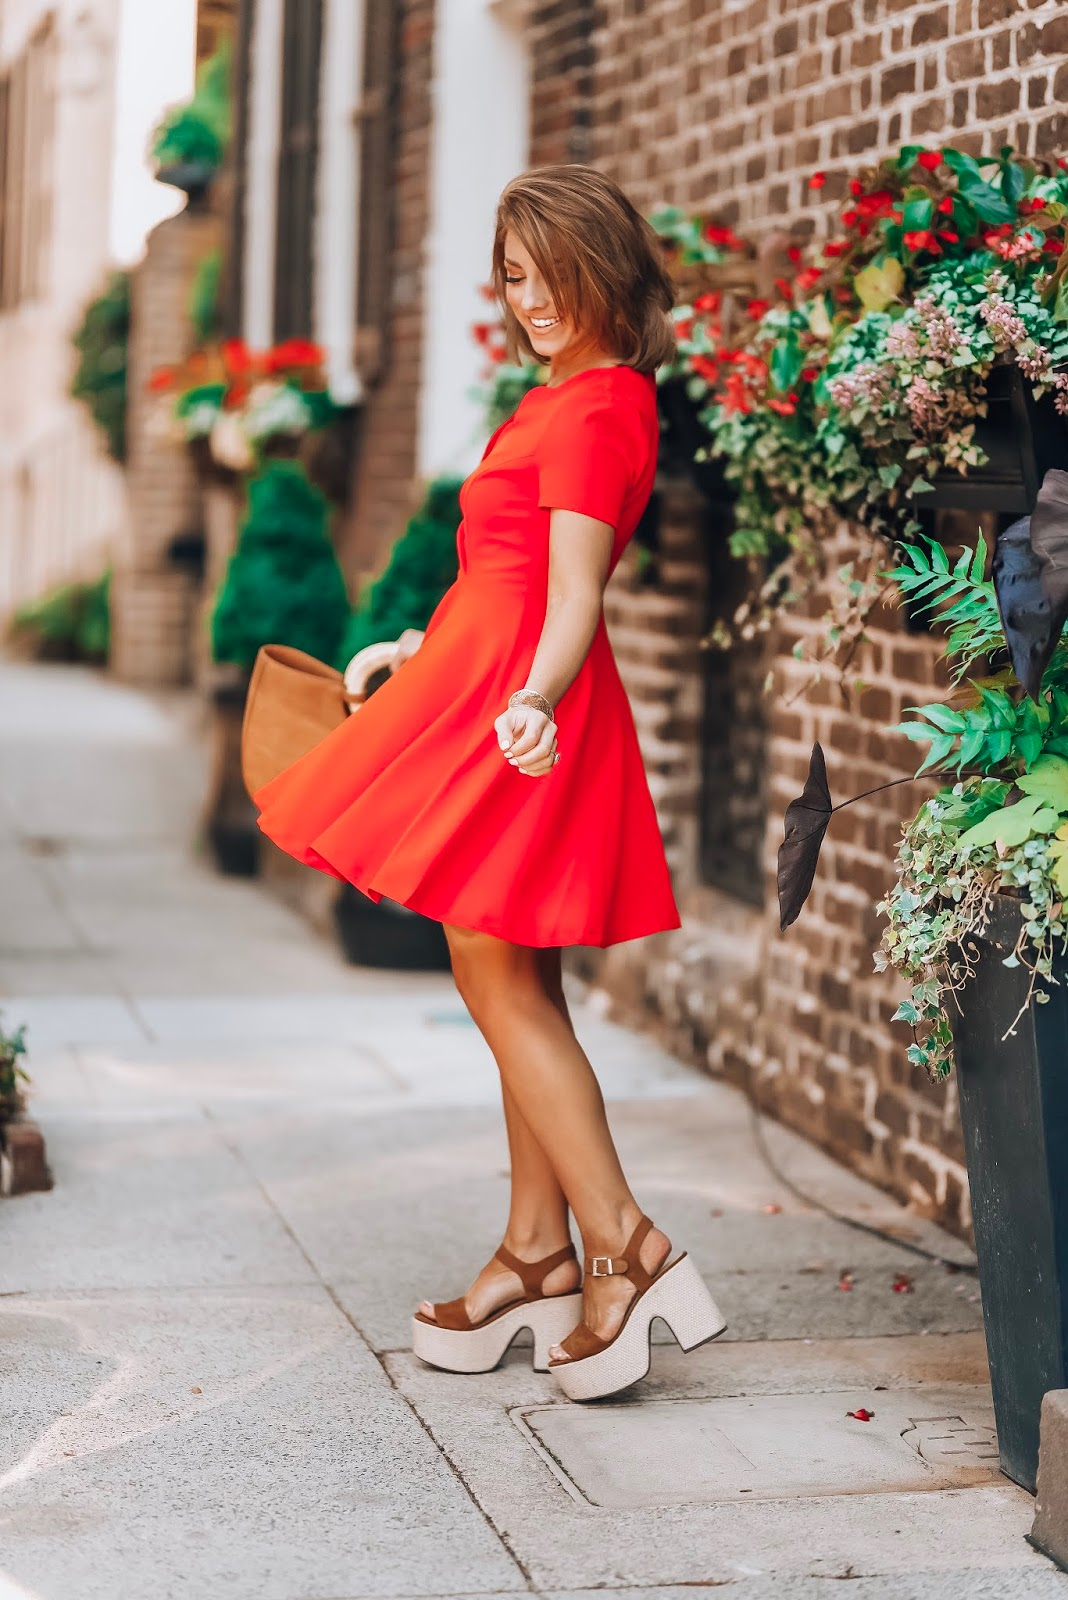 Under $60 Scallop Red Dress in Charleston + Target Style Straw Bag - Something Delightful Blog #springstyle